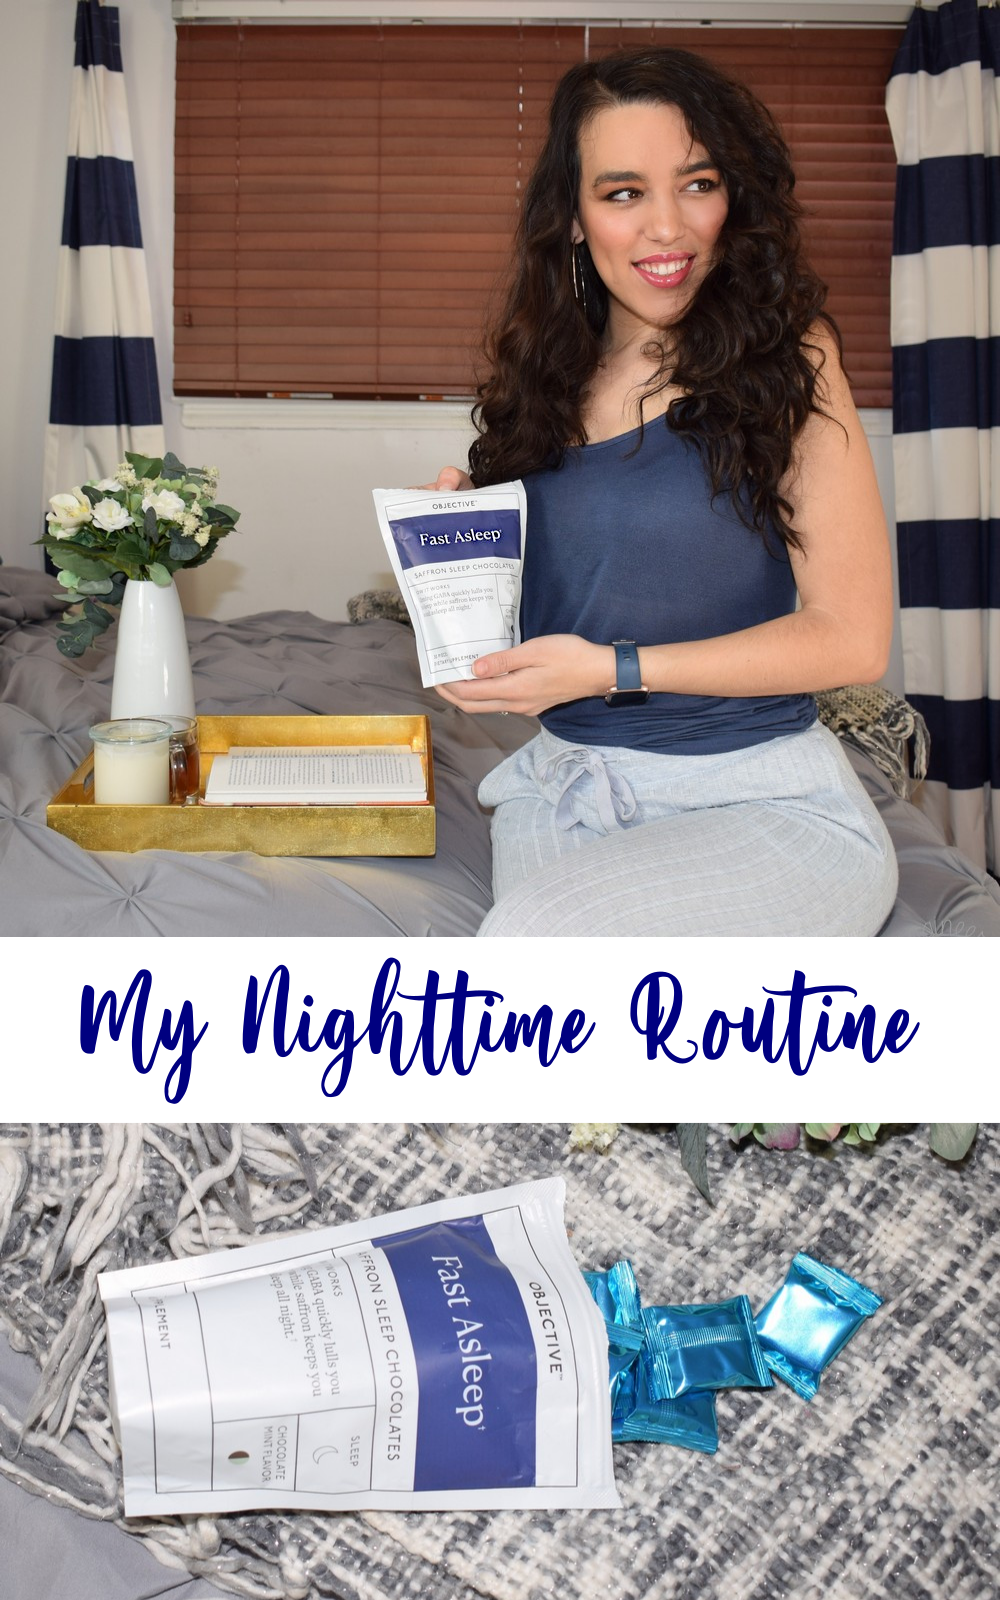 My Nighttime Routine